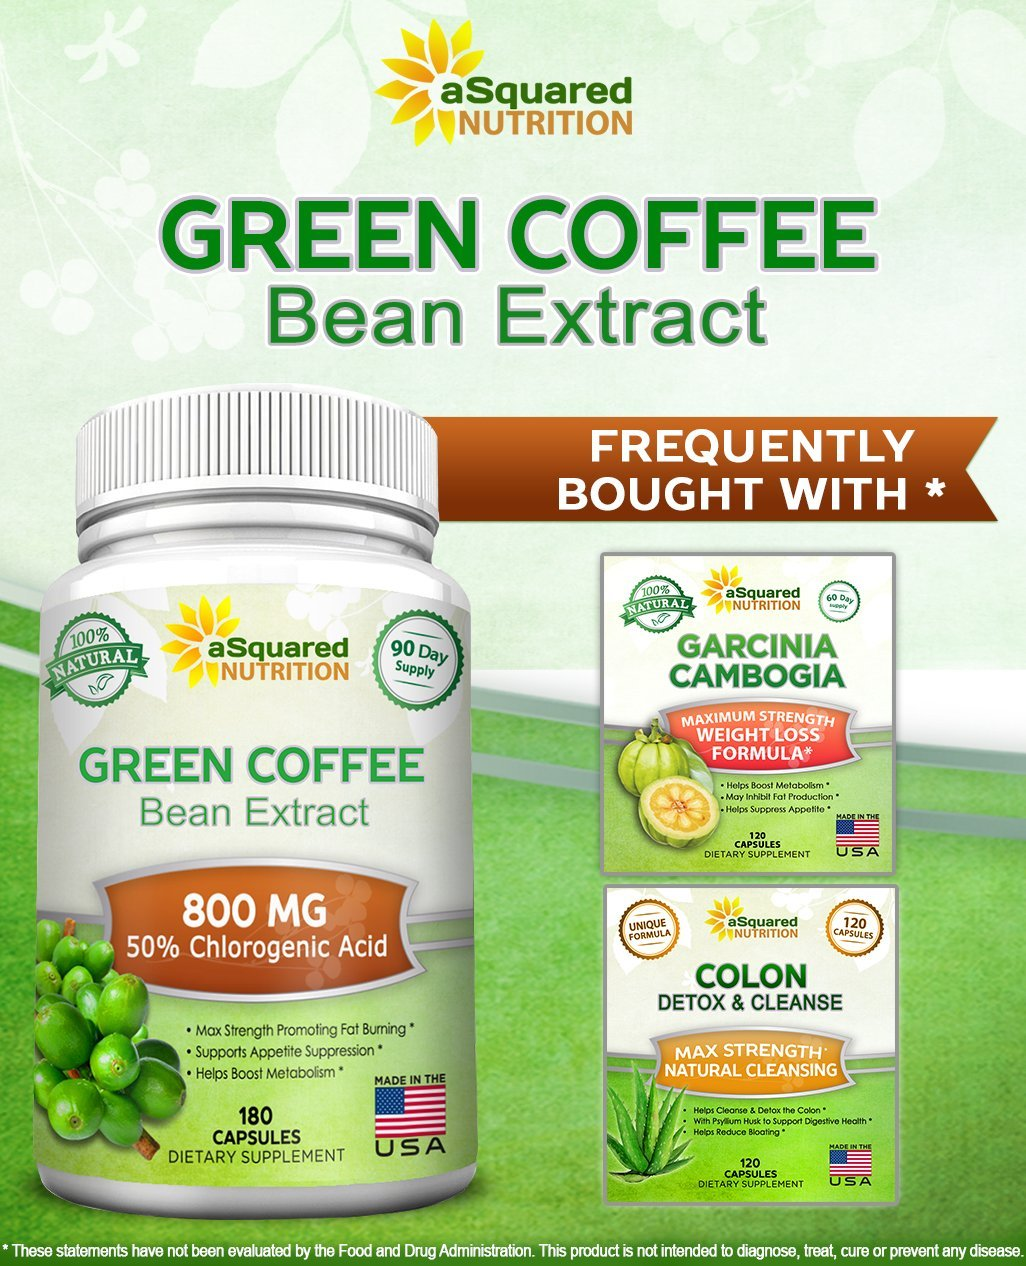 100% Pure Green Coffee Bean Extract - 180 Capsules - Max Strength Natural GCA Antioxidant Cleanse for Weight Loss, 800mg w/ 50% Chlorogenic Acid per Pill, 1600mg Daily Supplement, Healthy Fat Burner by aSquared Nutrition (Image #4)